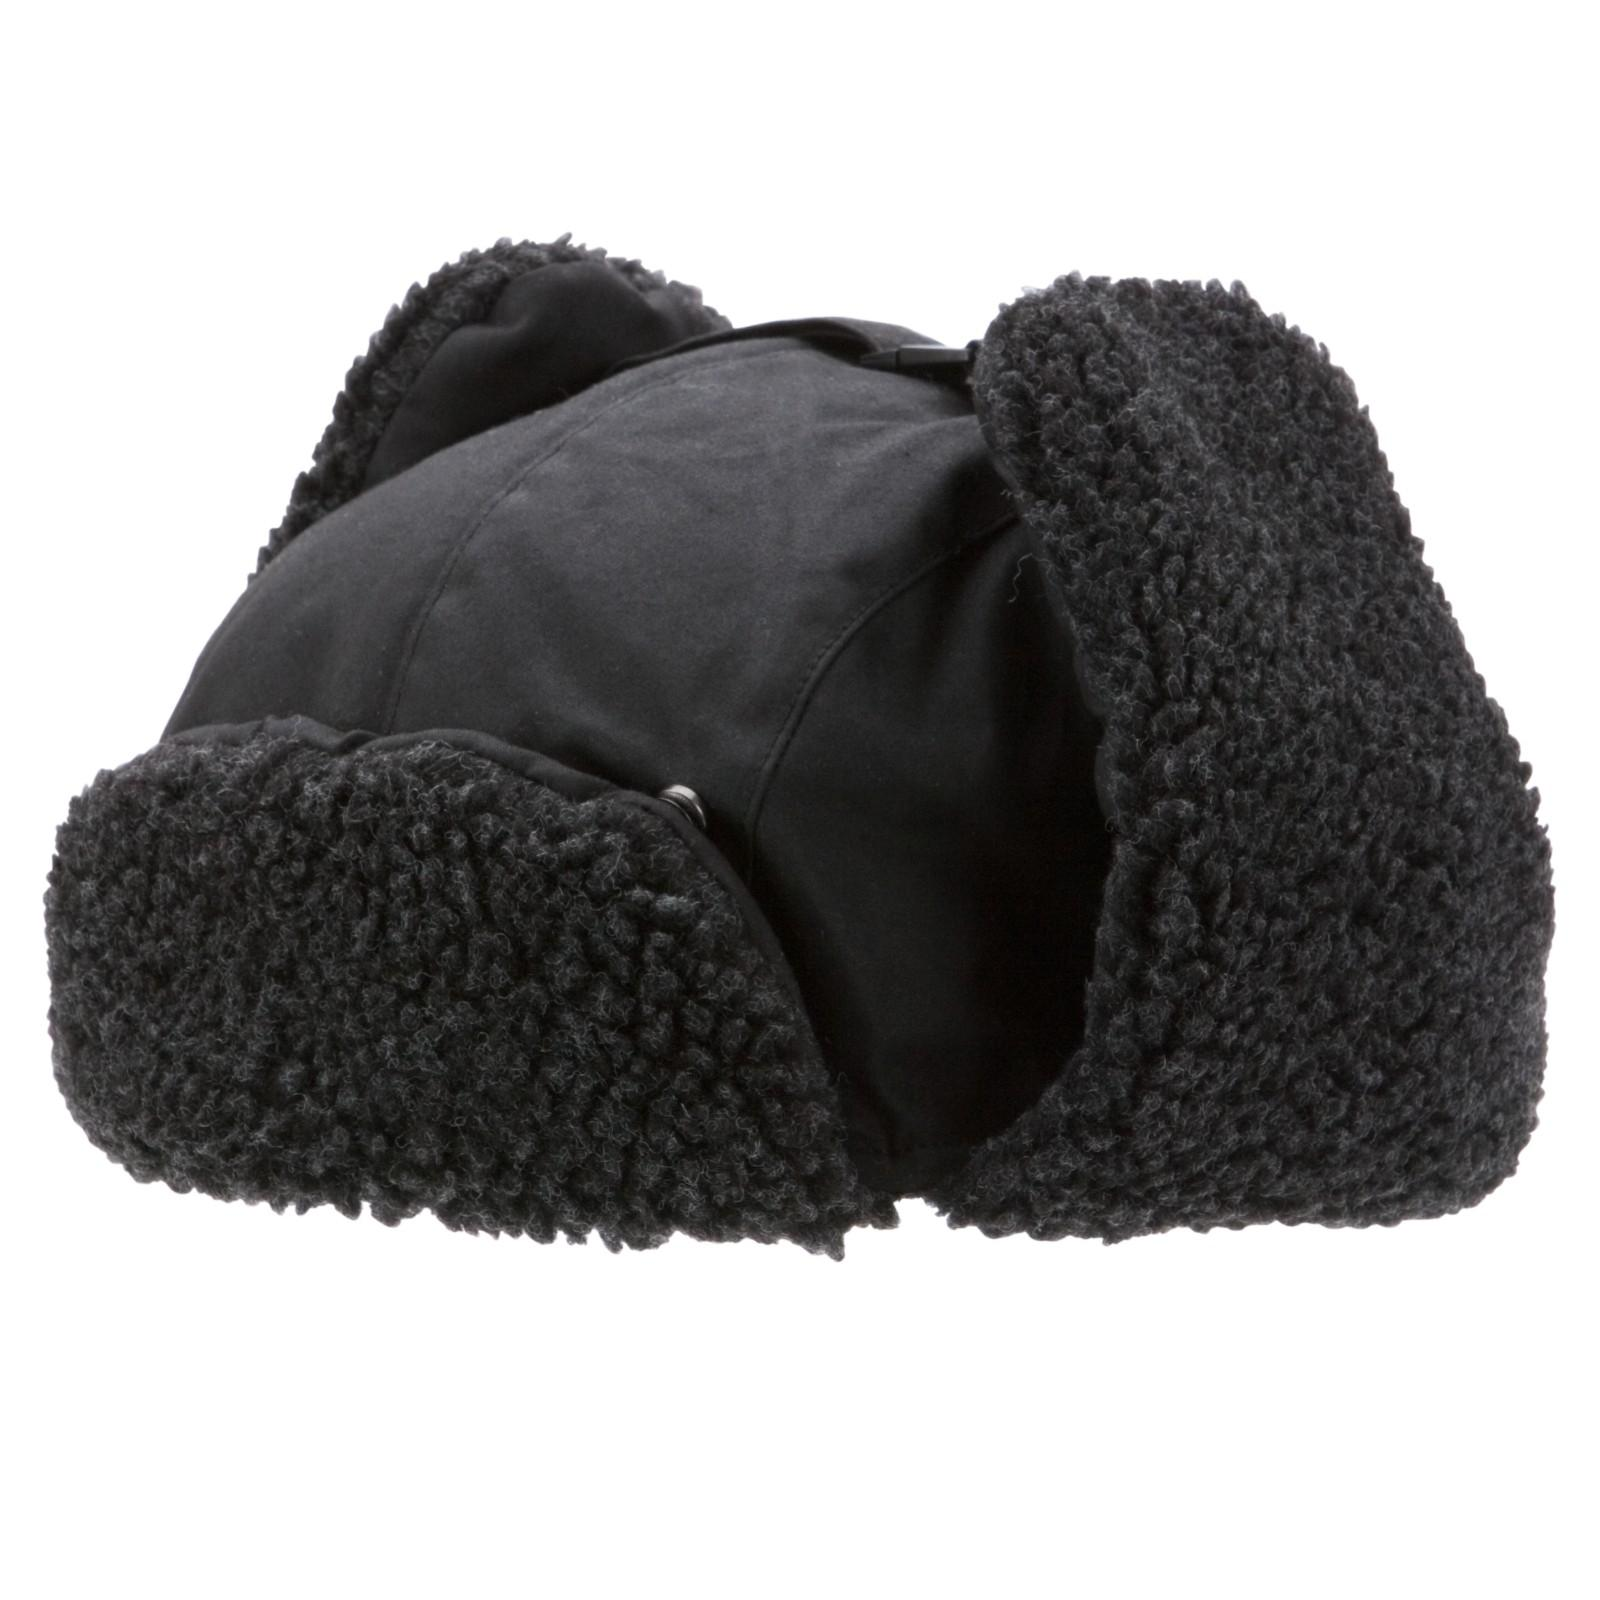 Barbour Trapper Hat With Fleece Lining In Black For Men Lyst